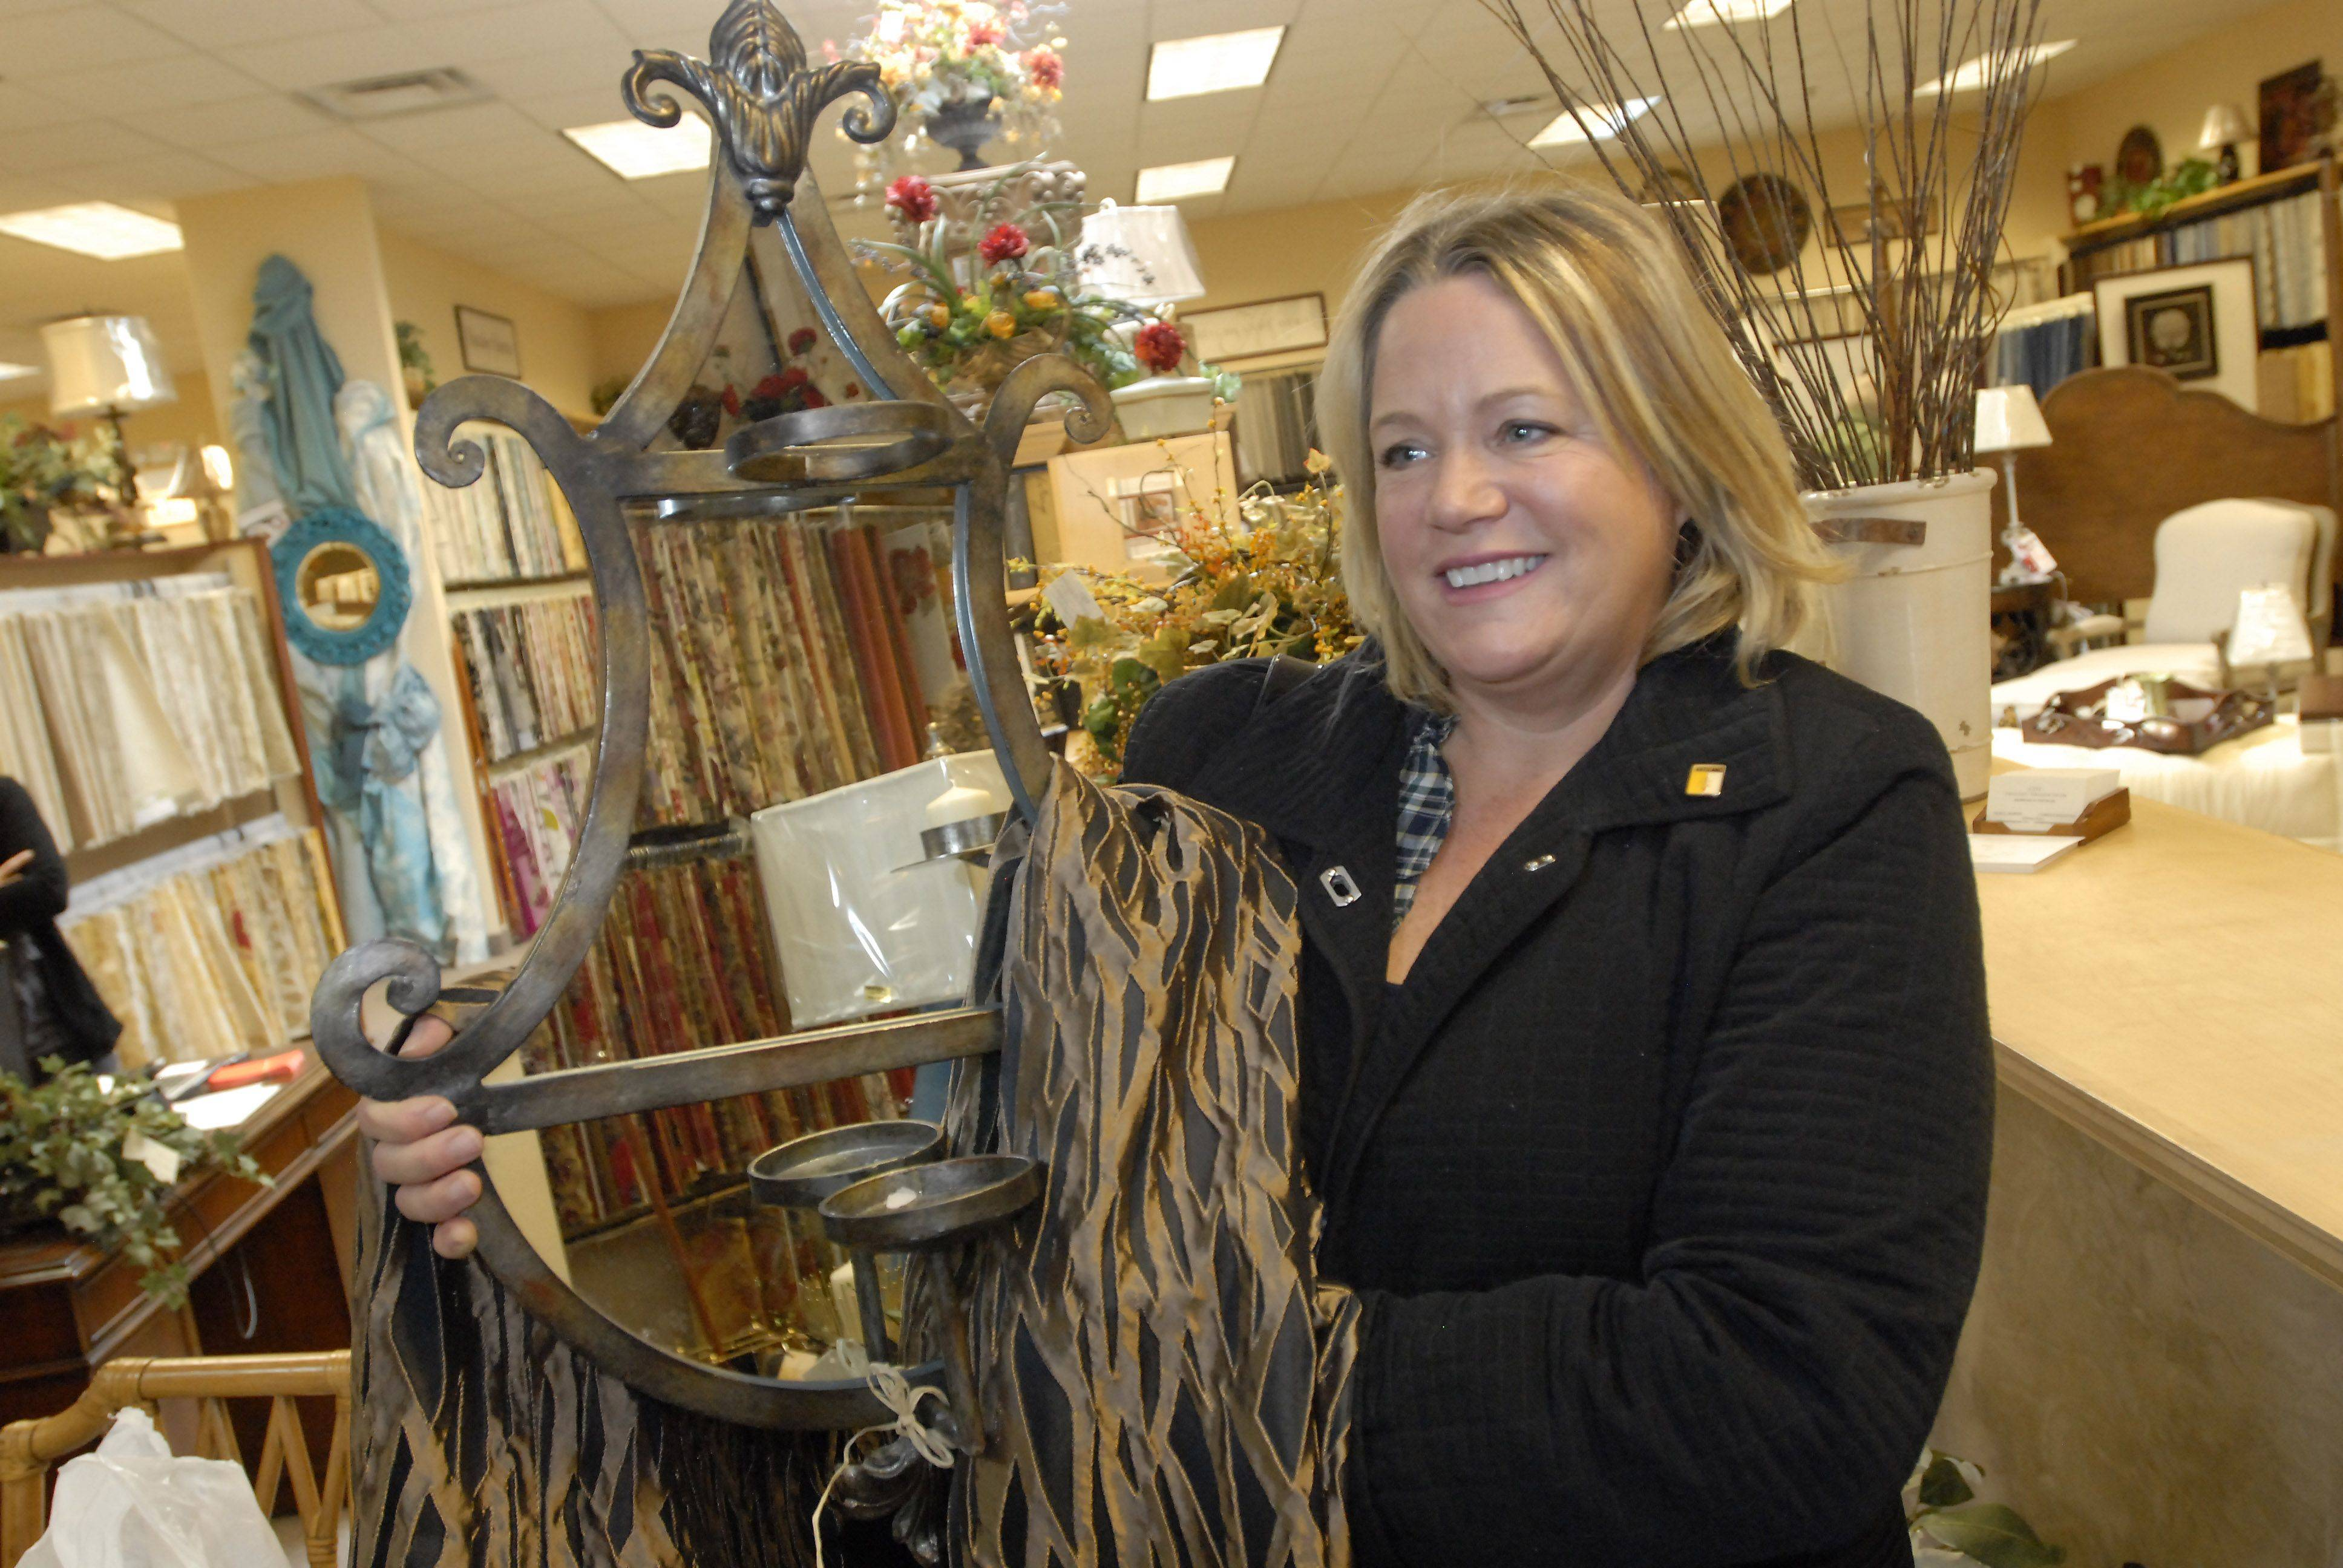 Julie Towers of Palatine shows a mirror and fabric panel that were among her purchases at the Arlington Design Center.